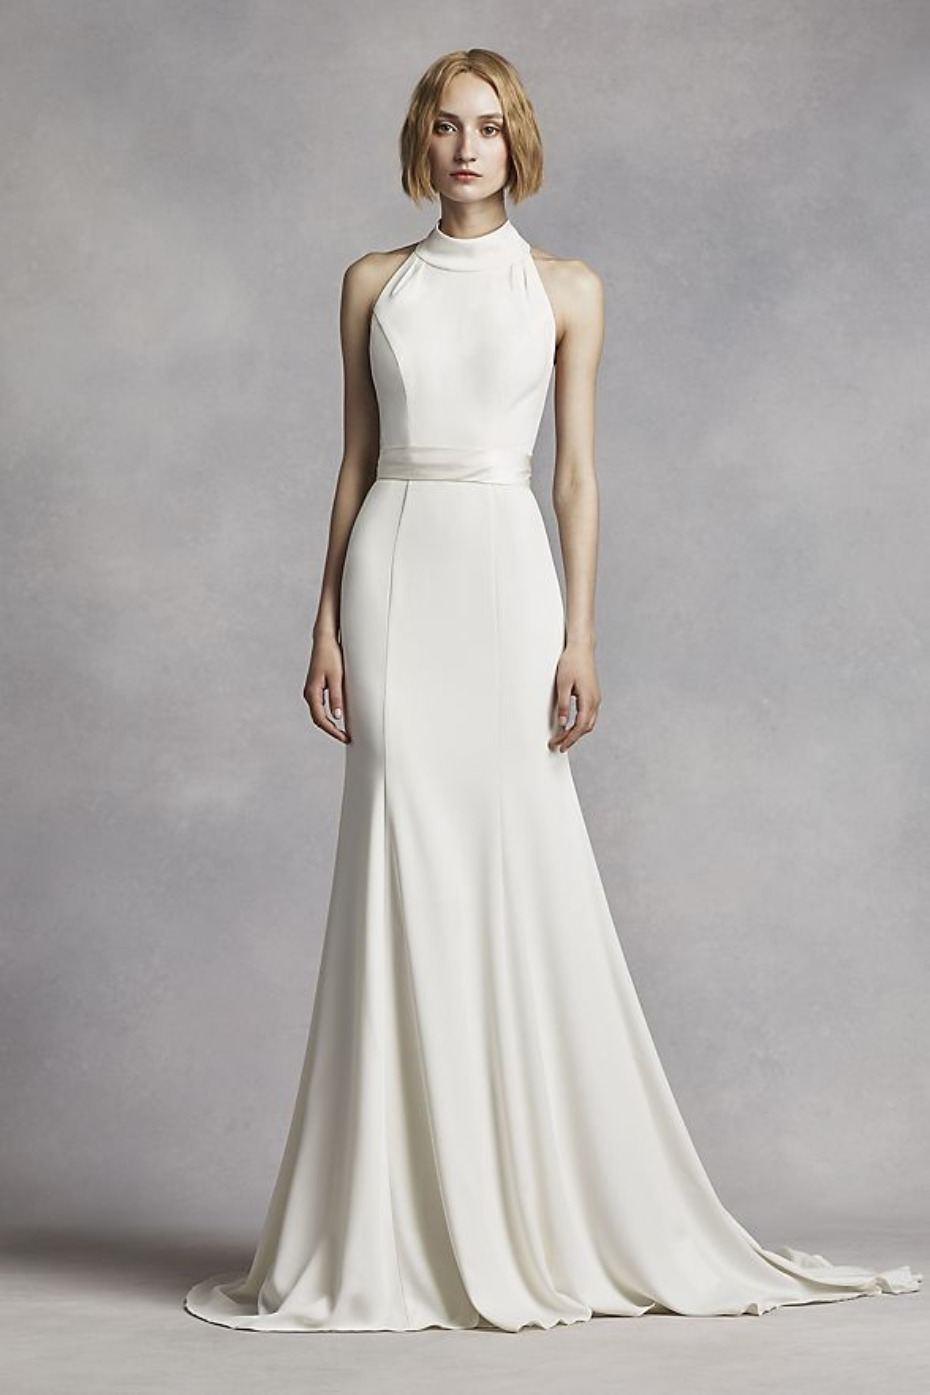 David's Bridal White by Vera Wang High Neck Halter Gown